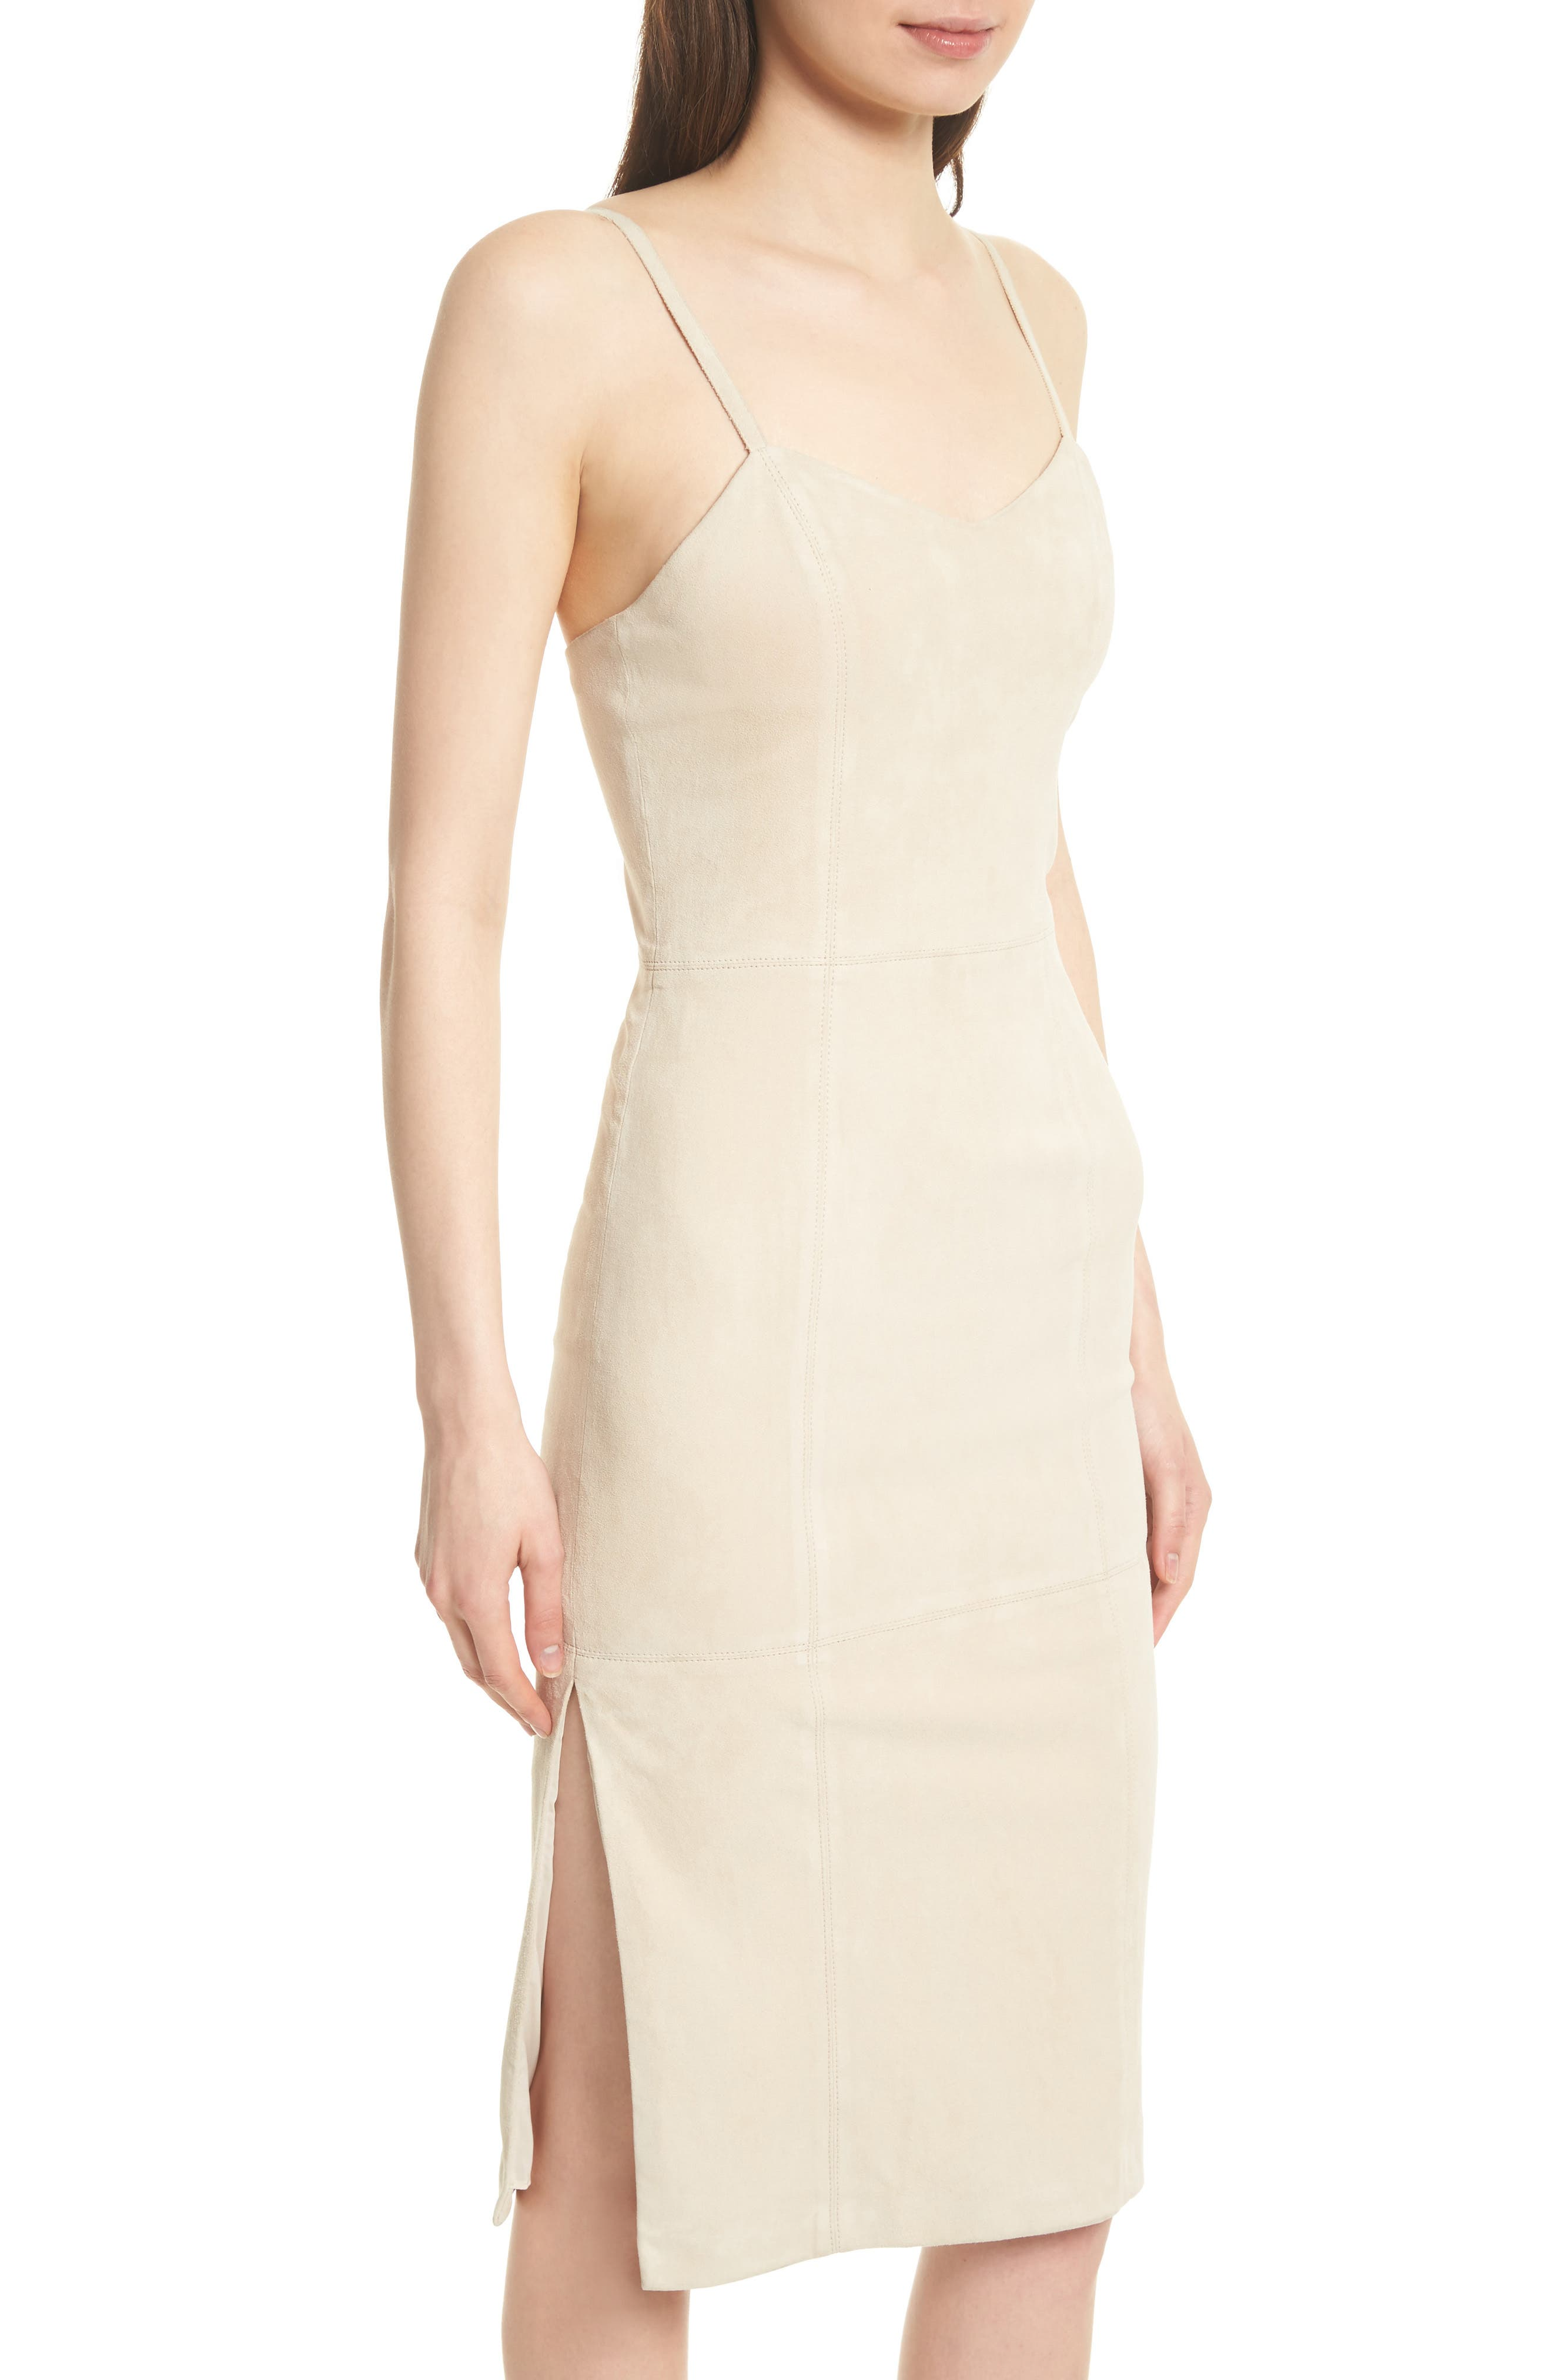 Rochell Suede Sheath Dress,                             Alternate thumbnail 4, color,                             Champagne